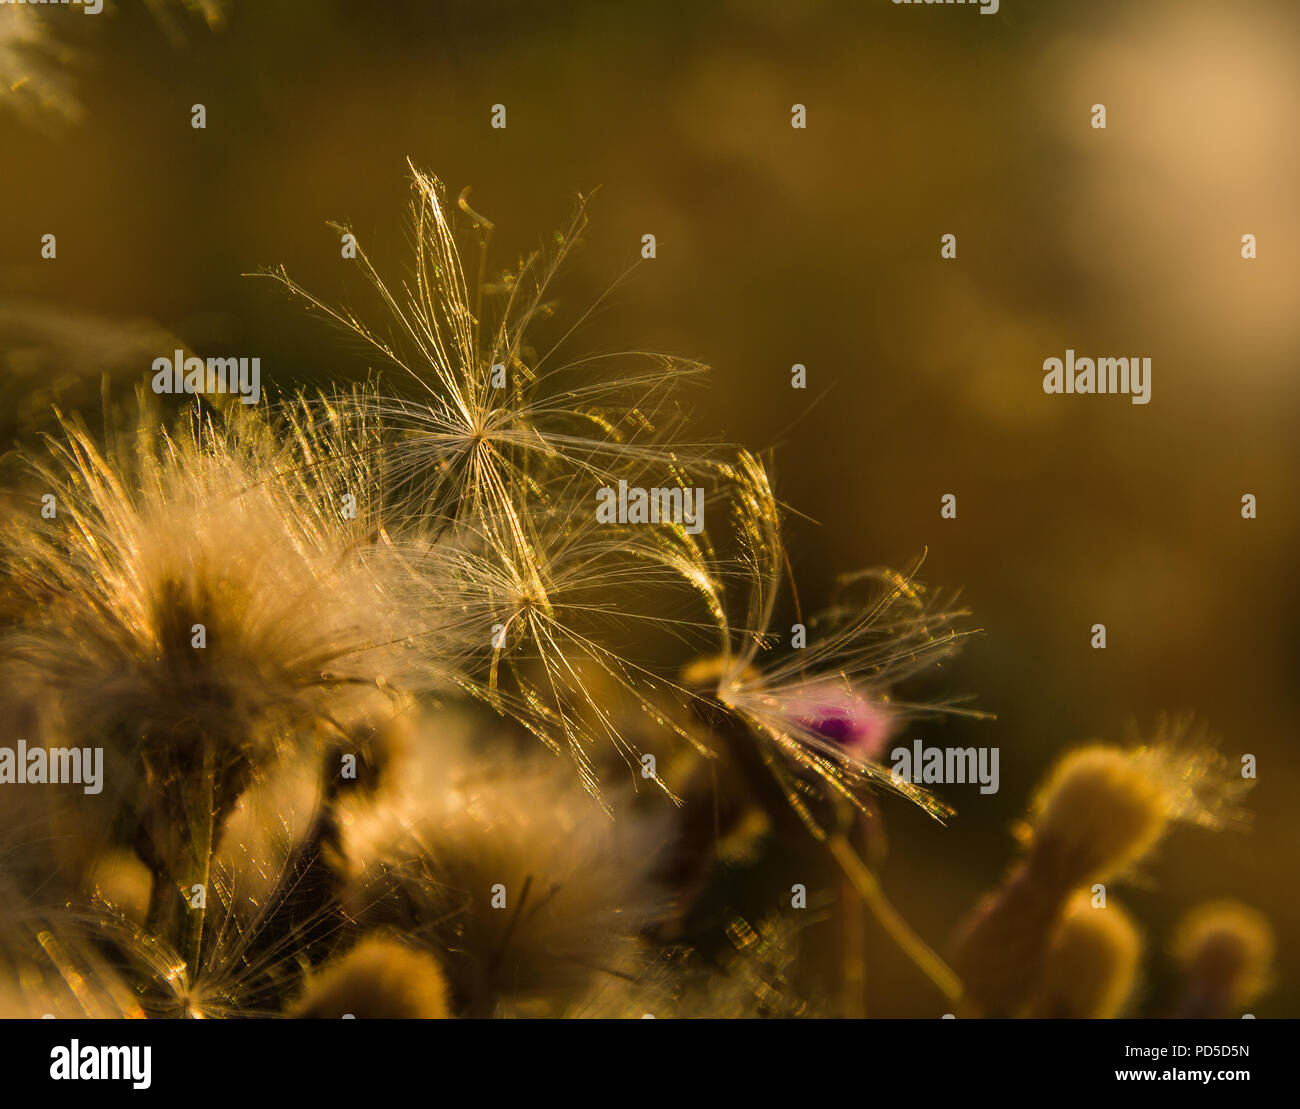 Seeds on thistle flowers - Stock Image